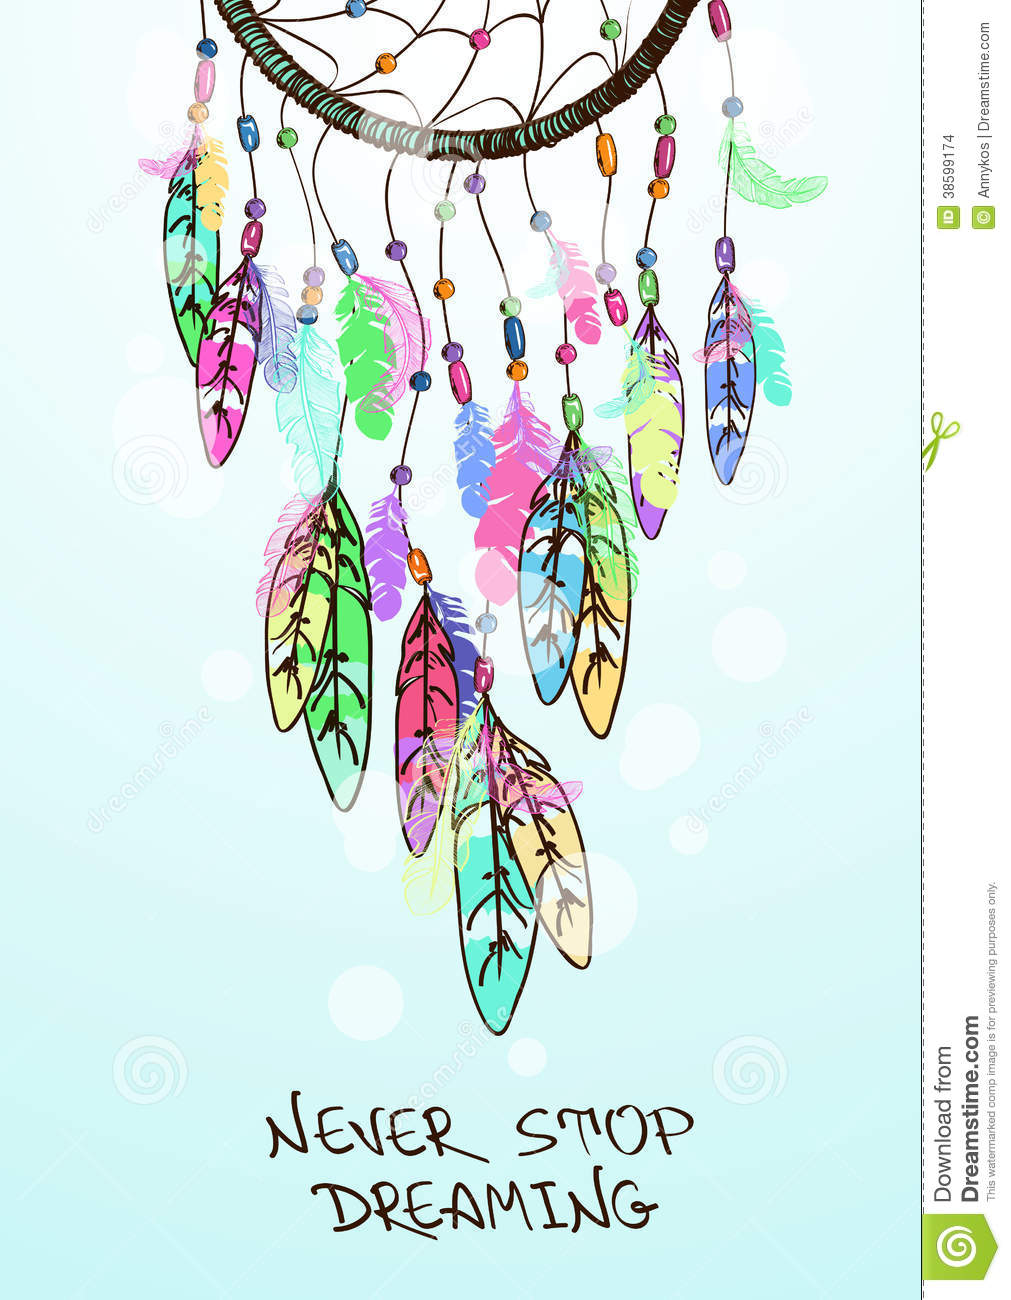 Colorful tumblr wallpaper iphone - Colorful Ethnic Illustration With American Indians Dreamcatcher